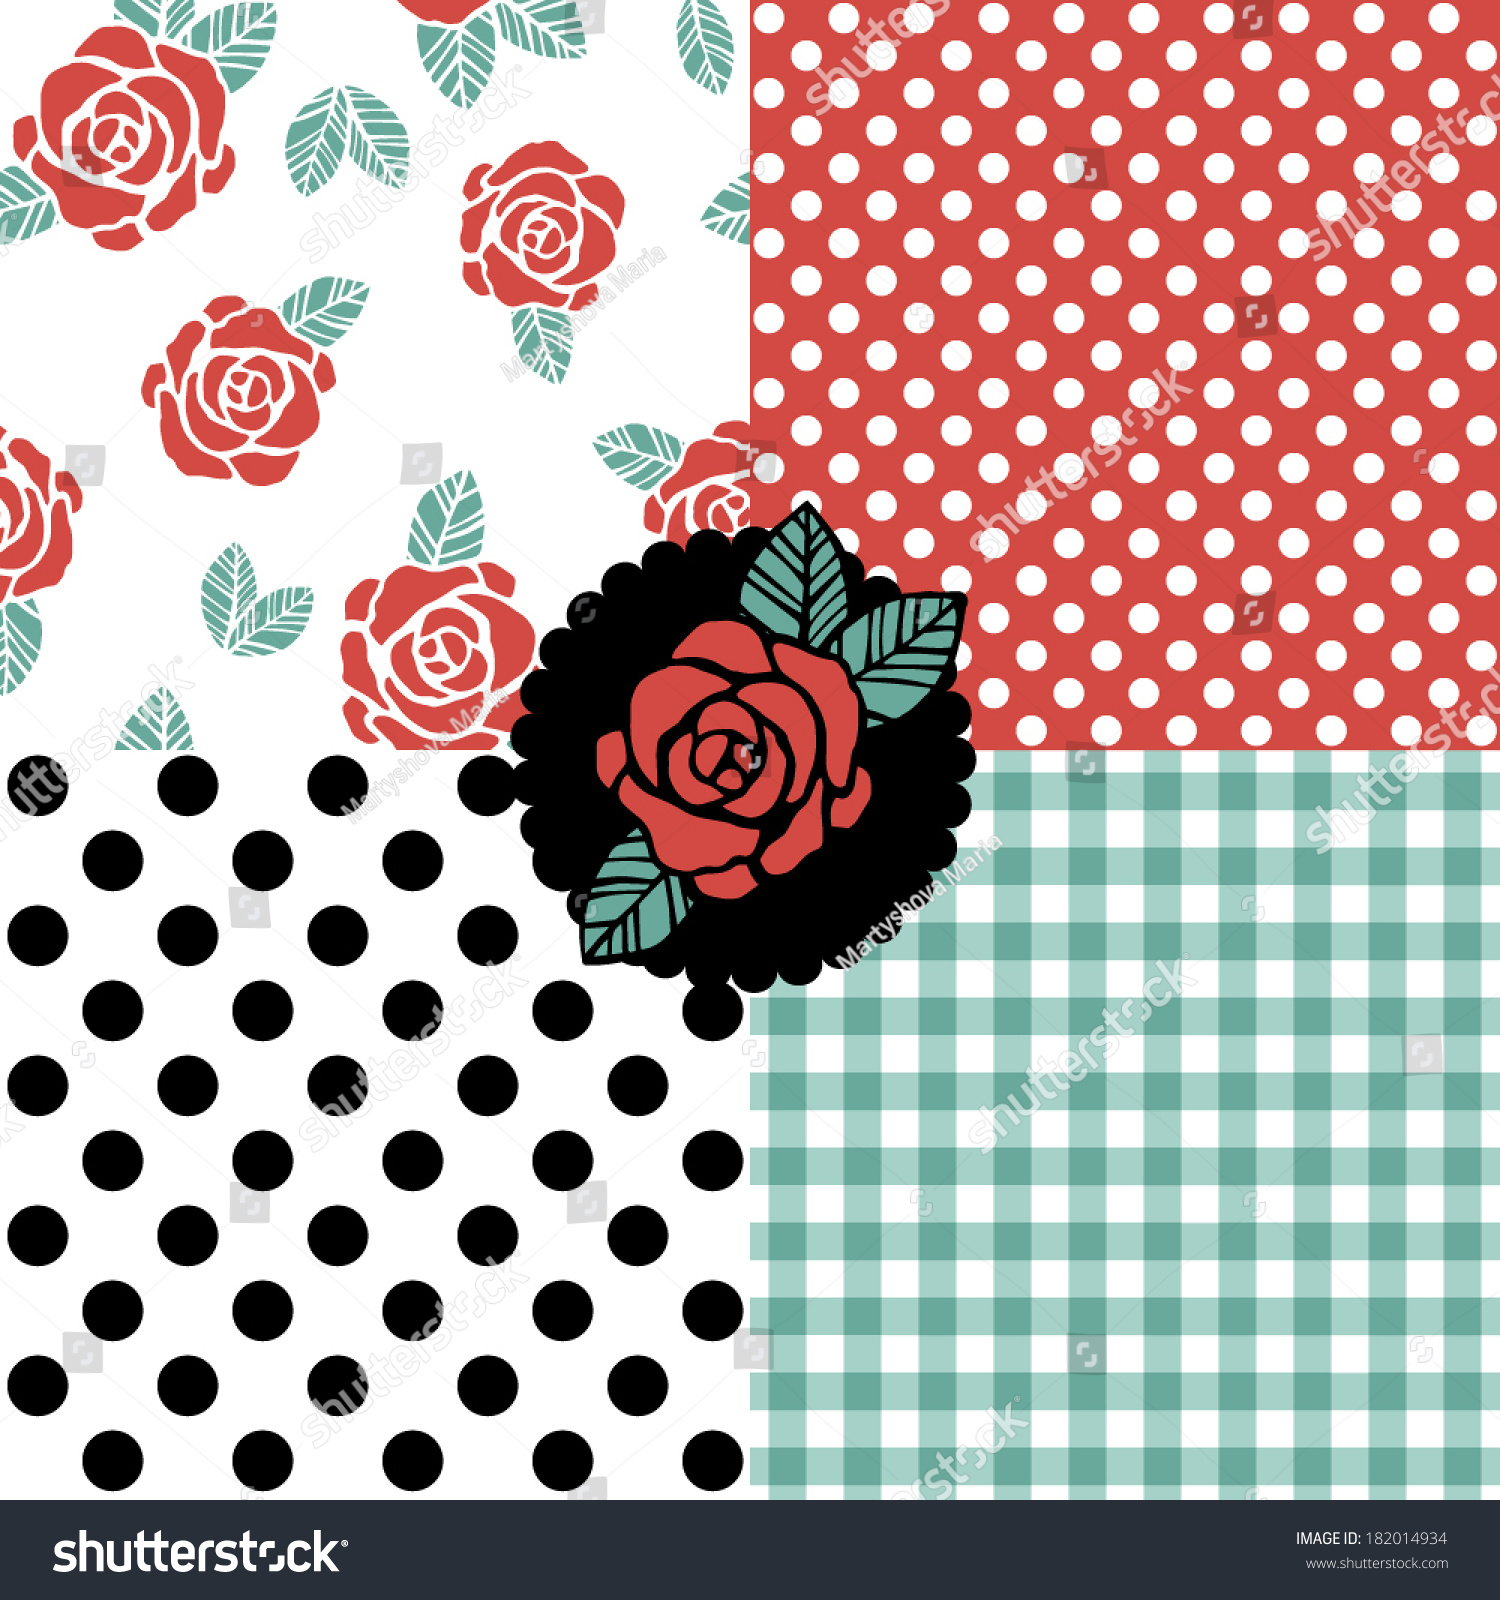 Rockabilly Wallpaper: Set Of Seamless Vector Patterns With Roses, Polka Dots